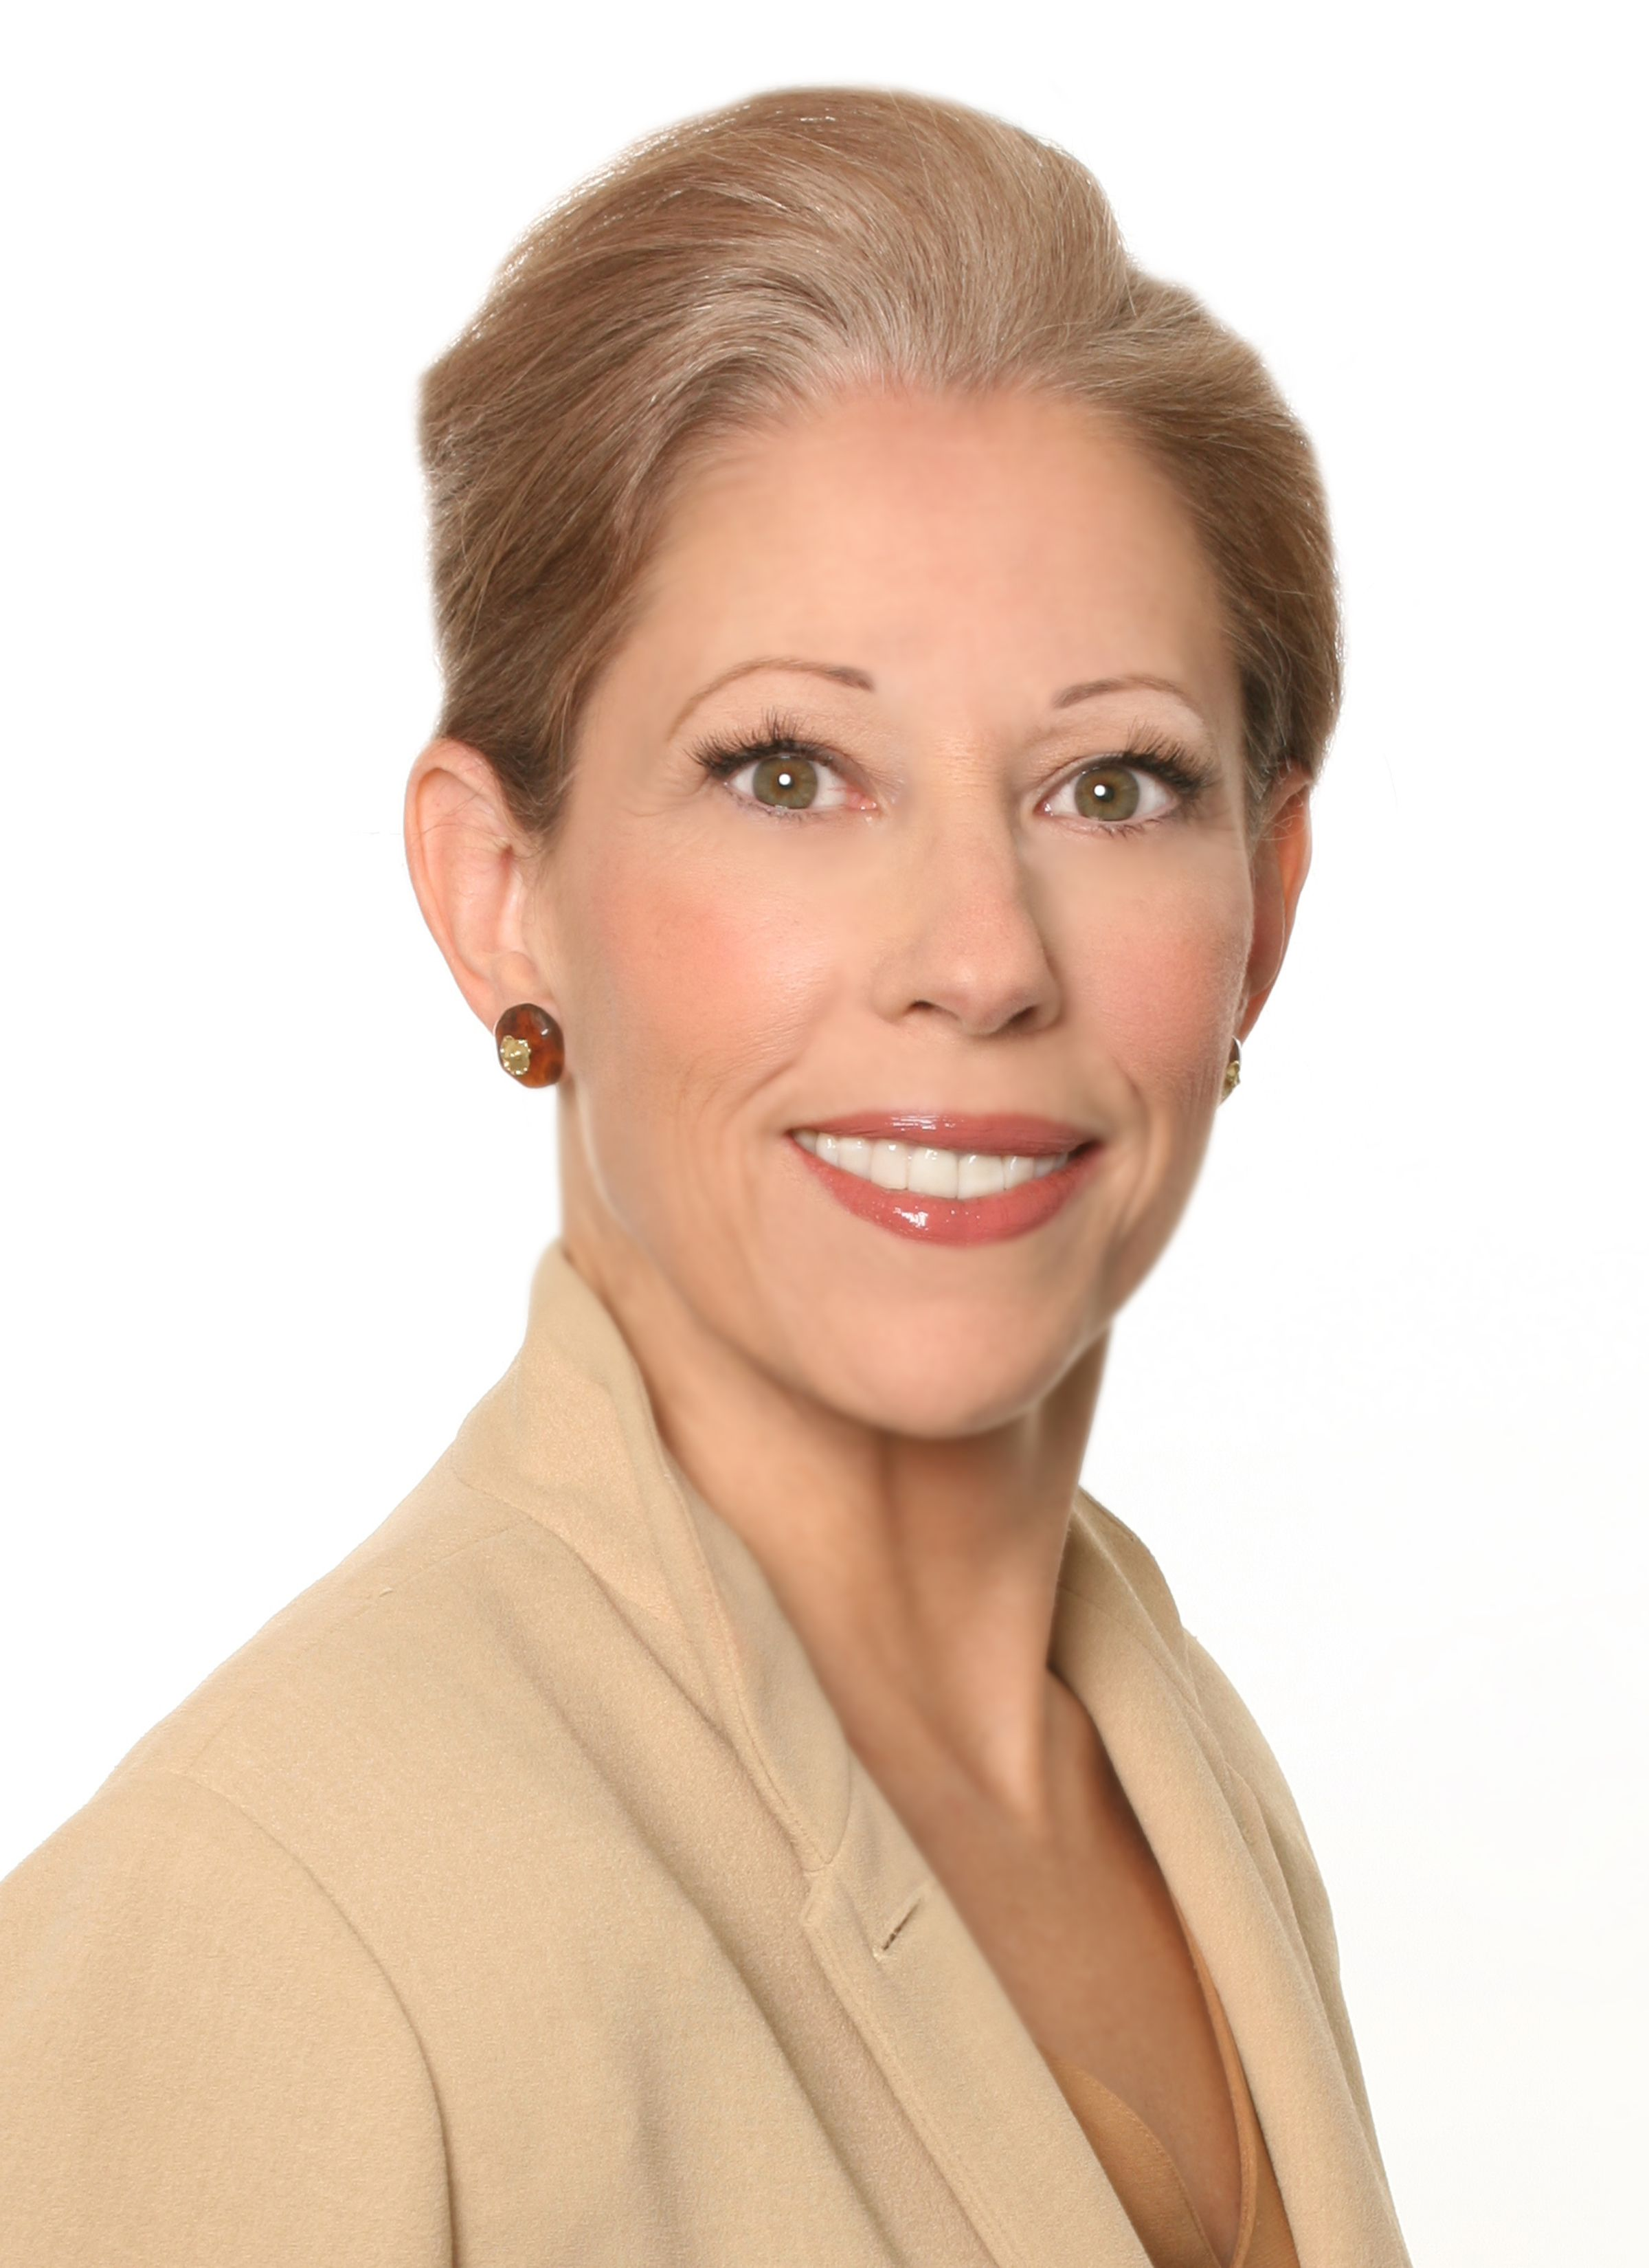 Robin Abrams Is The Executive Vice President At The Lansco Corporation Womeninbiz Realestate Real Estate Investing Real Estate Women